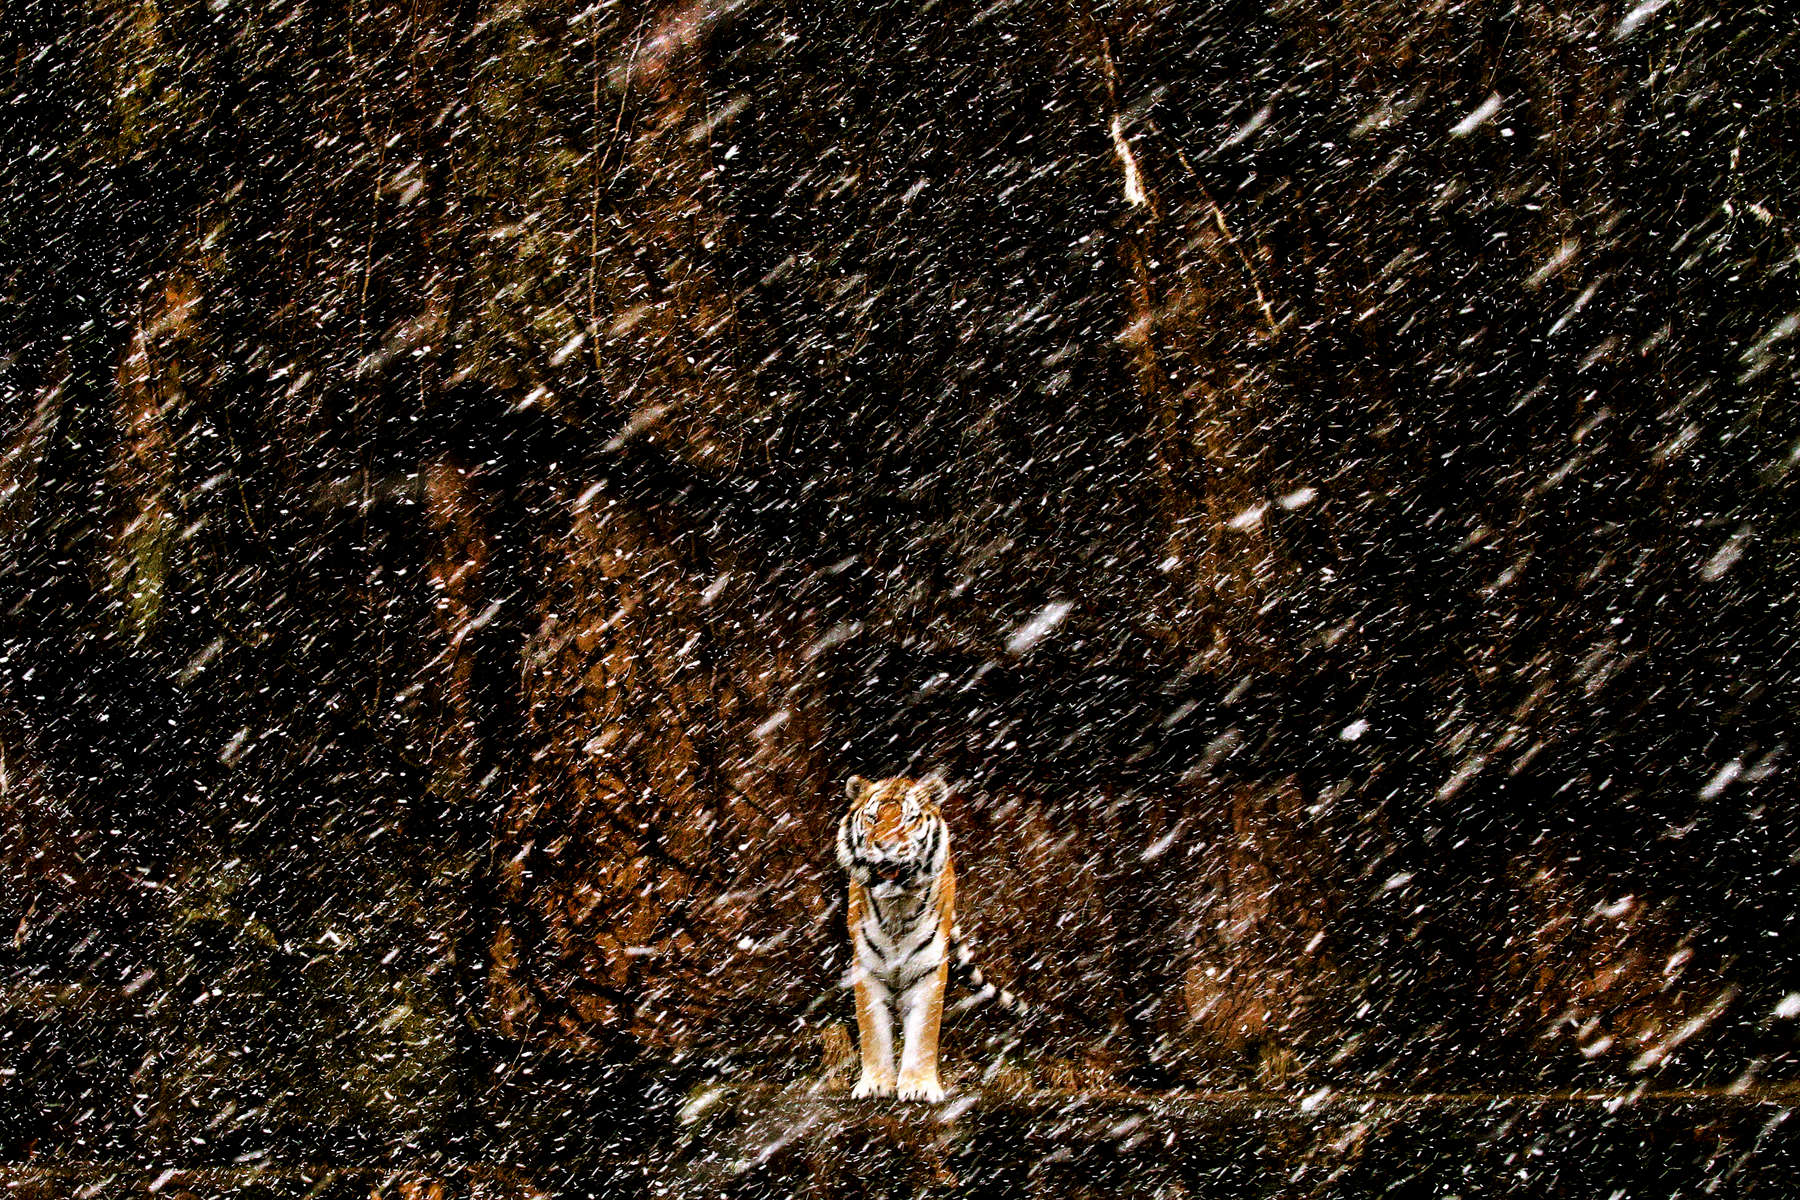 Pavel, an 8-year-old Amur tiger, watches a sudden snow storm from his enclosure at the Lincoln Park Zoo in Chicago.